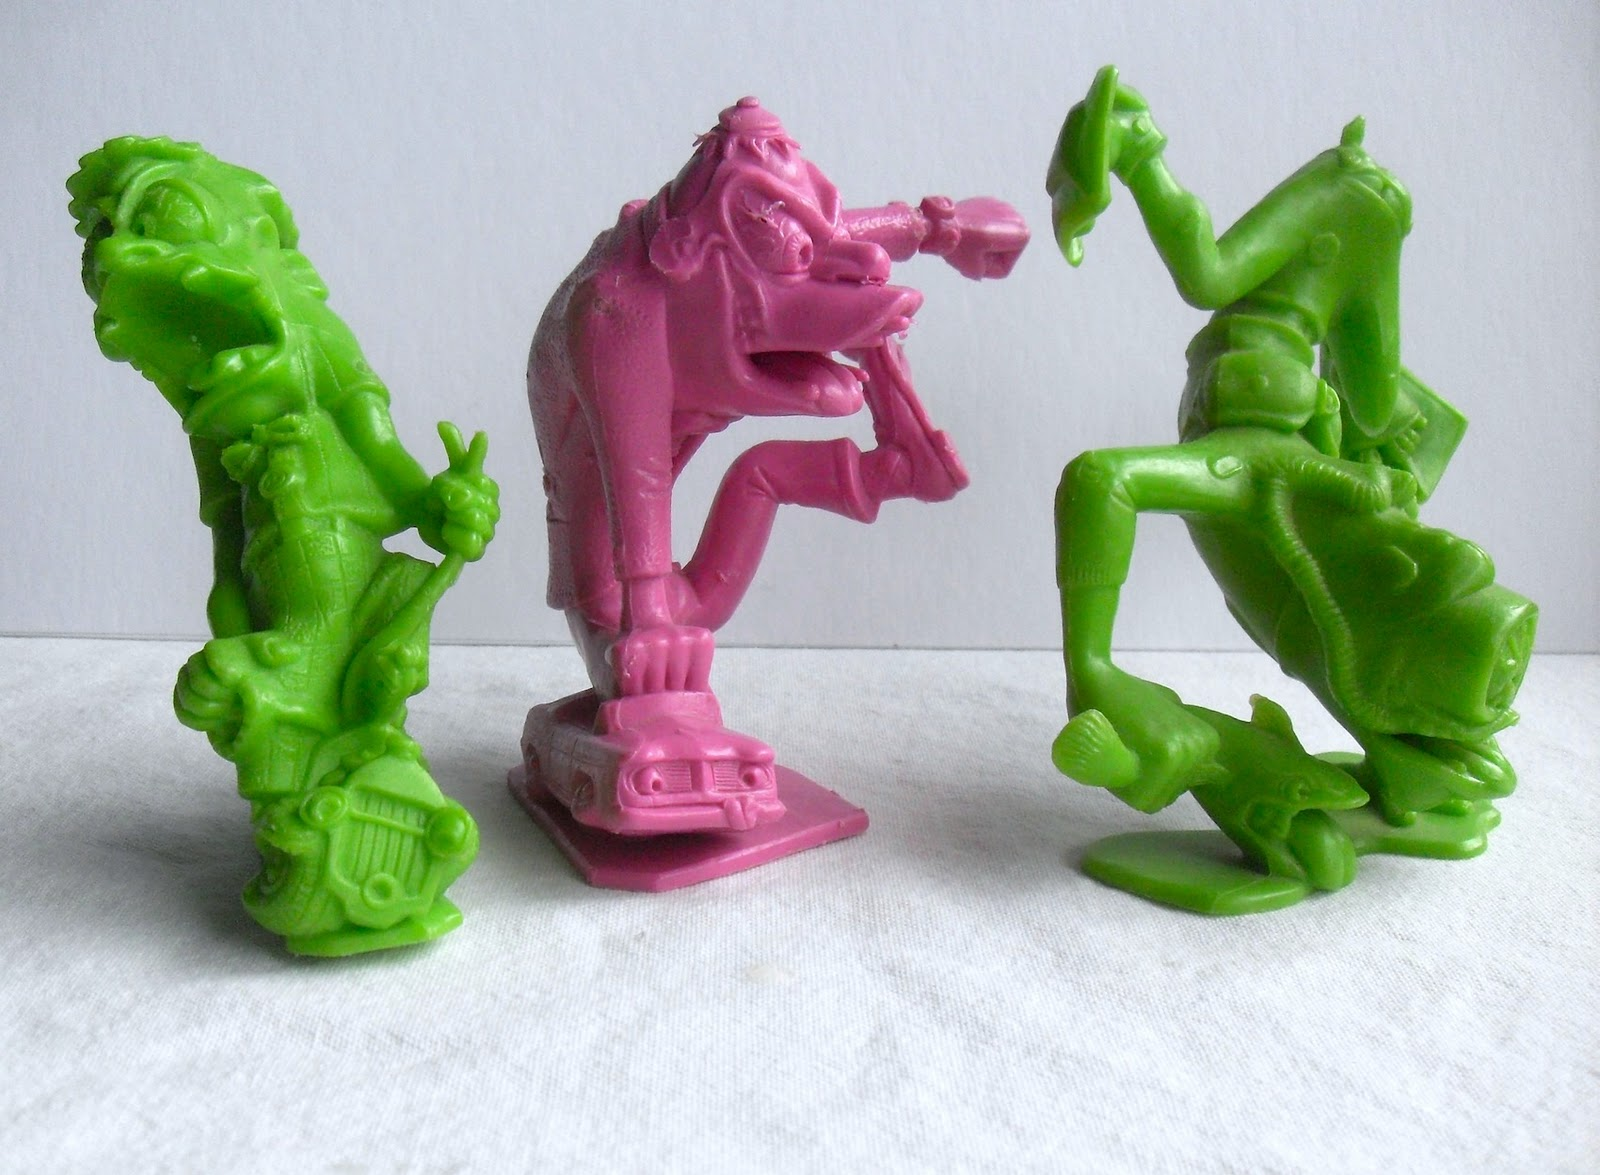 Old Toys From The 1960 : Art skool damage christian montone nuggets from the